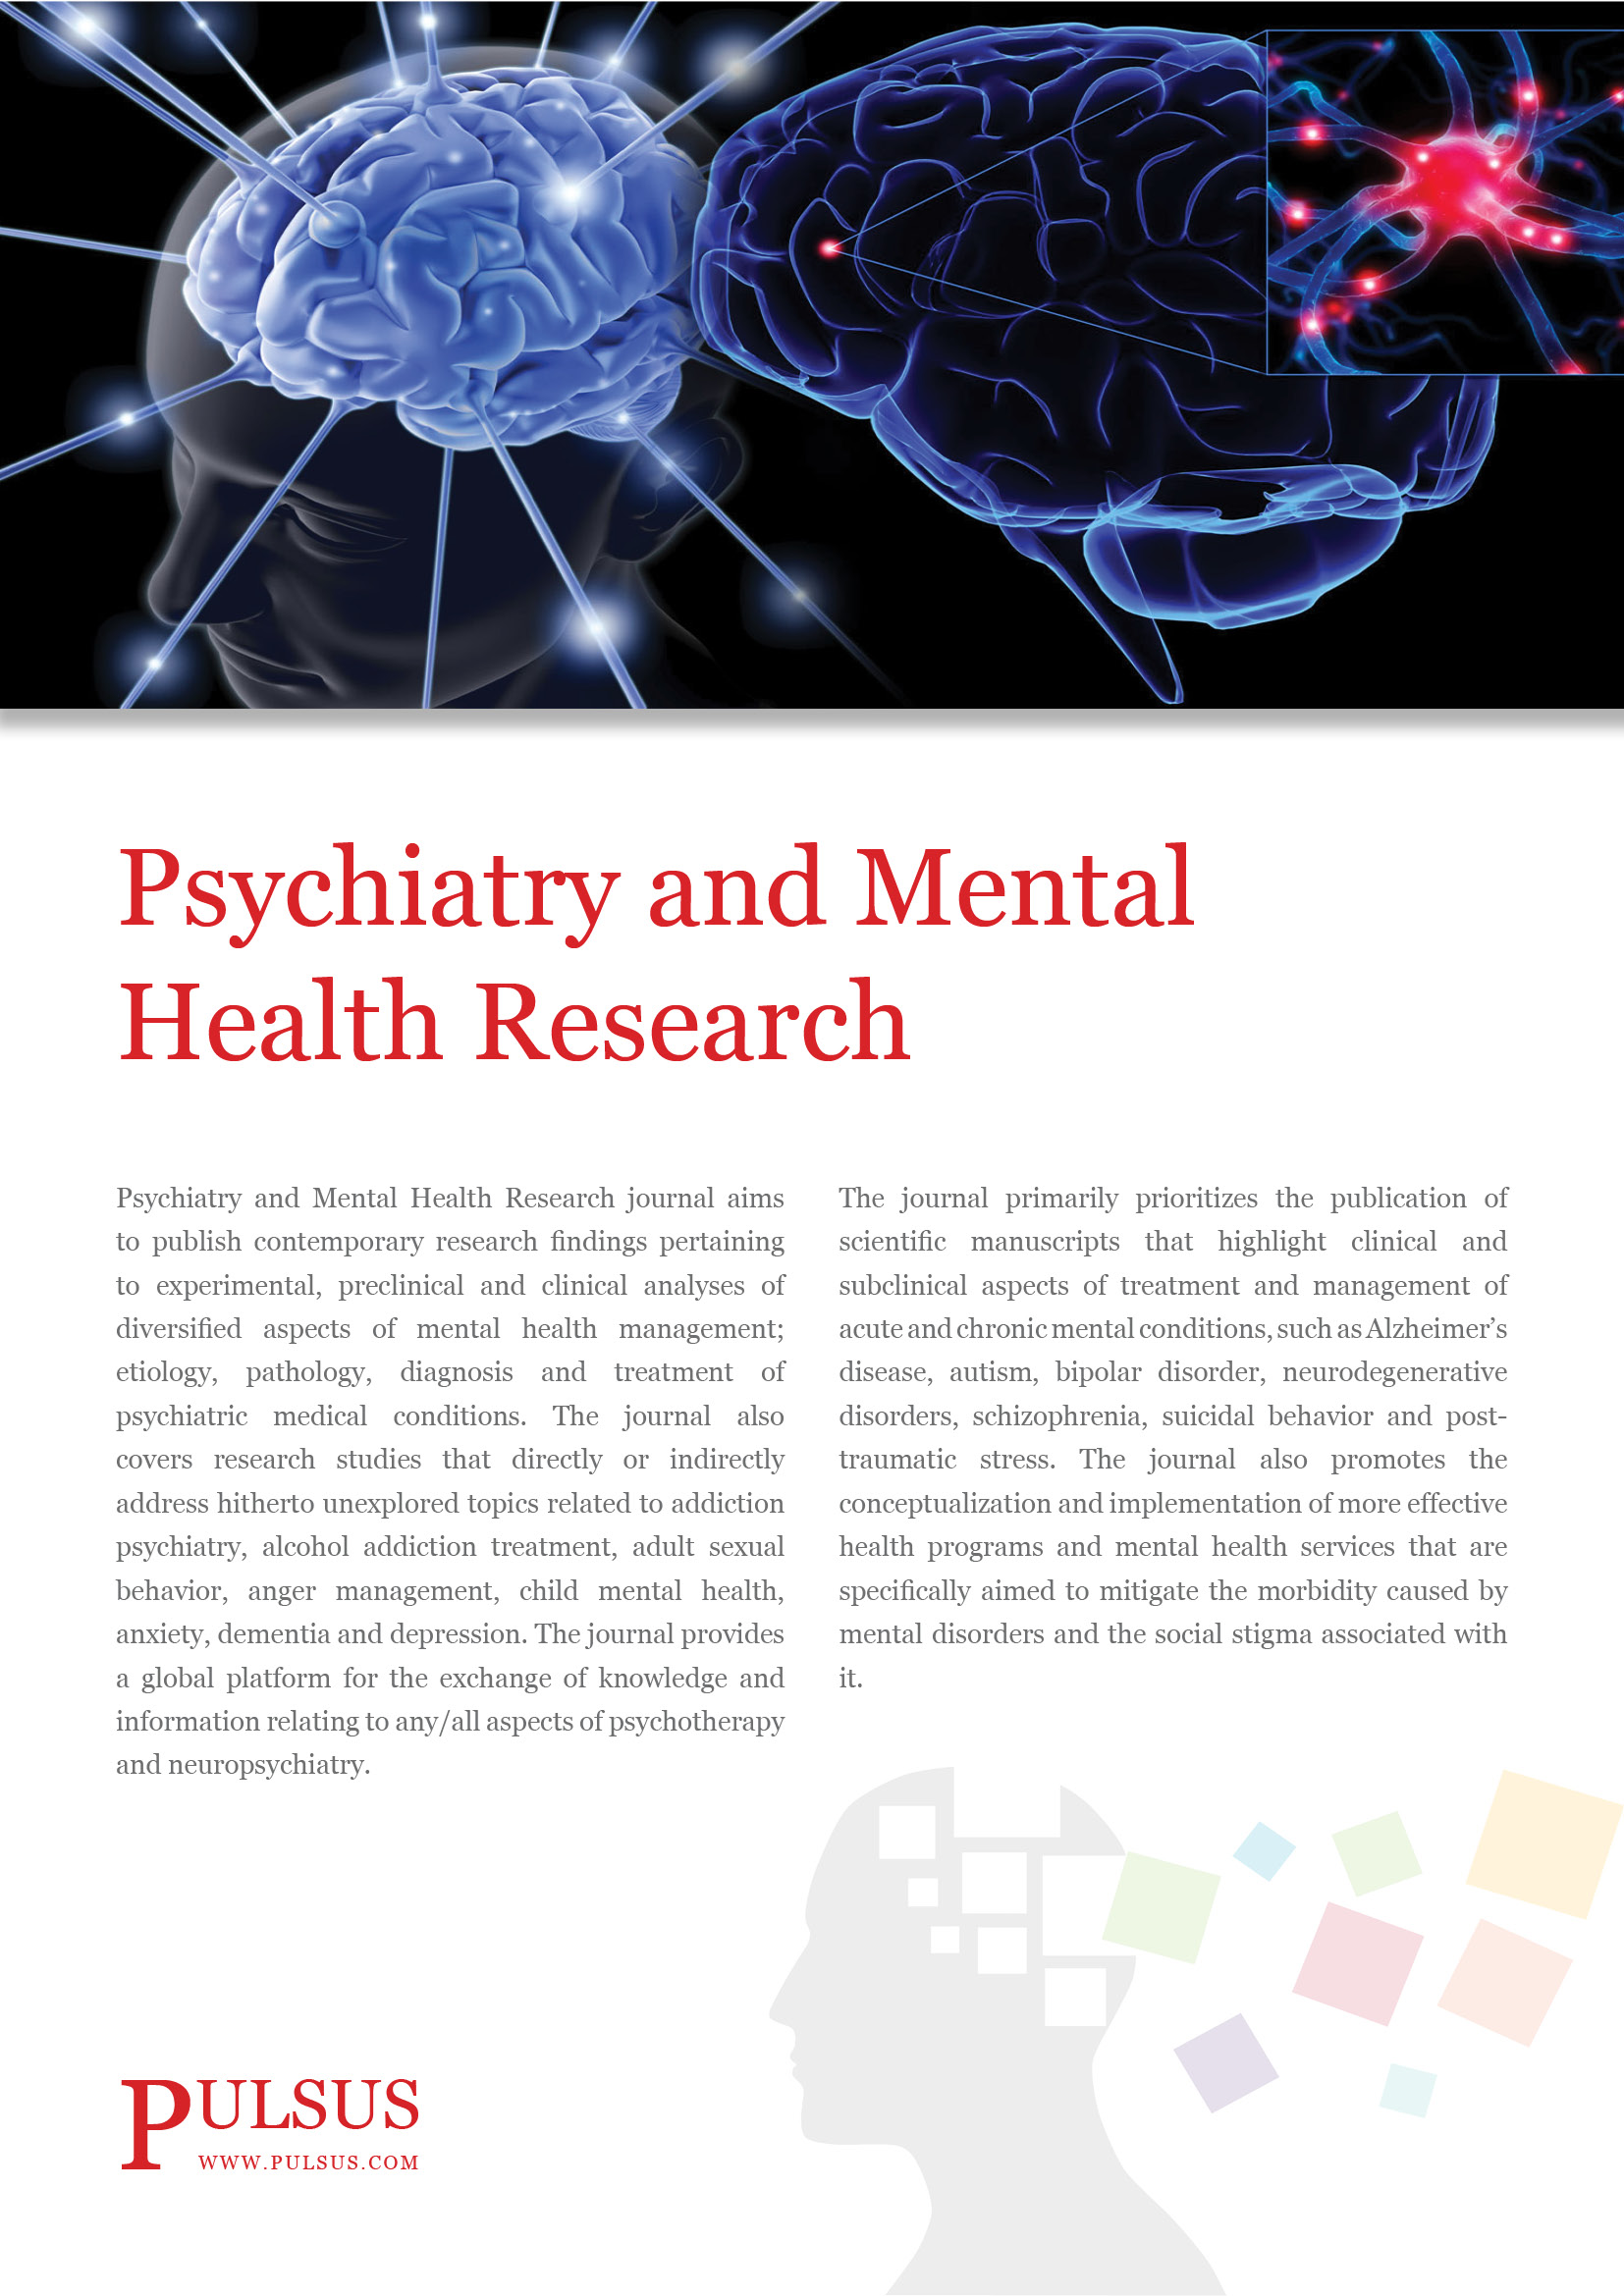 psychiatry research paper Child and adolescent psychiatry and mental health is affiliated with the international association for child and adolescent psychiatry and allied professions (iacapap) capmh is a high-visibility venue for the rapid exchange of interdisciplinary research into the diagnosis, prognosis and treatment of mental health conditions in children and adolescents worldwide.